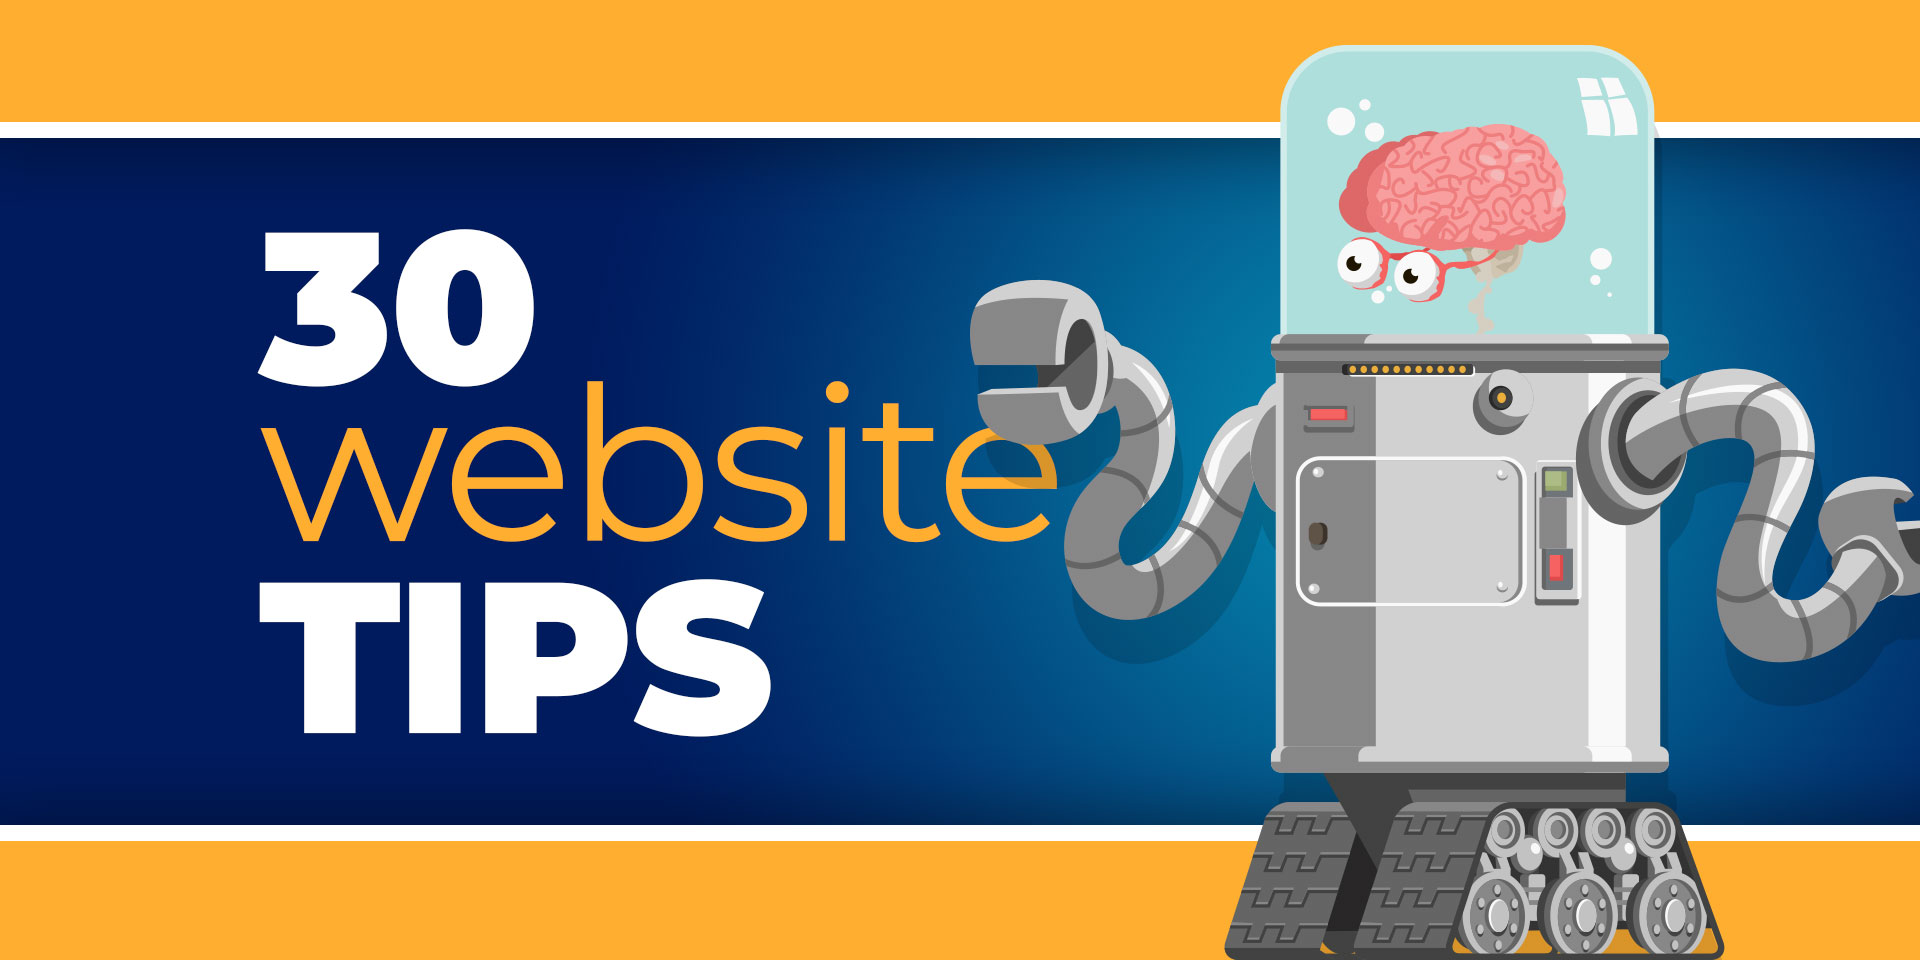 30 Tips to Boost Website Conversions